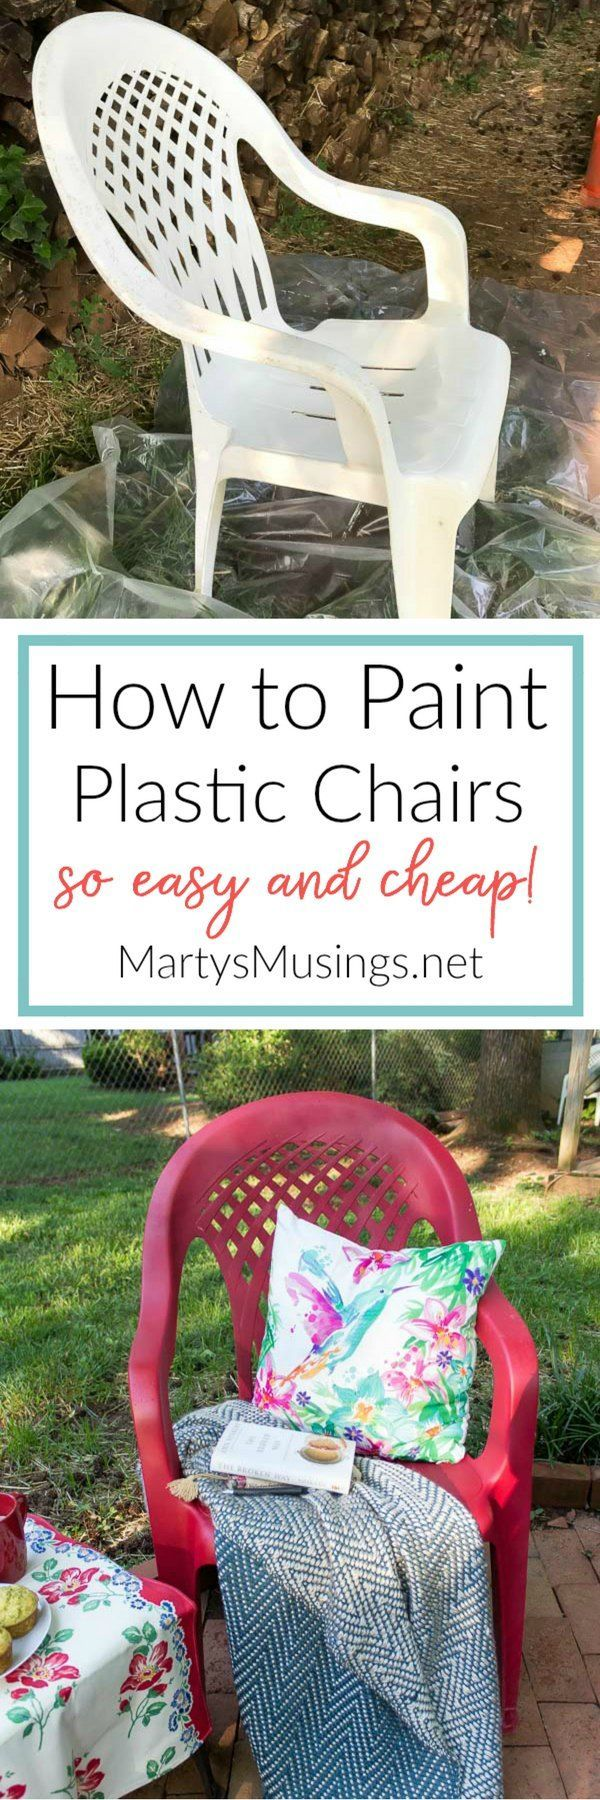 How to repaint plastic lawn chairs and furniture plastic outdoor - How To Paint Plastic Outdoor Chairs At Tinysidekick Com Paintplasticfurniture See More Don T Throw Away That Ugly Outdoor Furniture